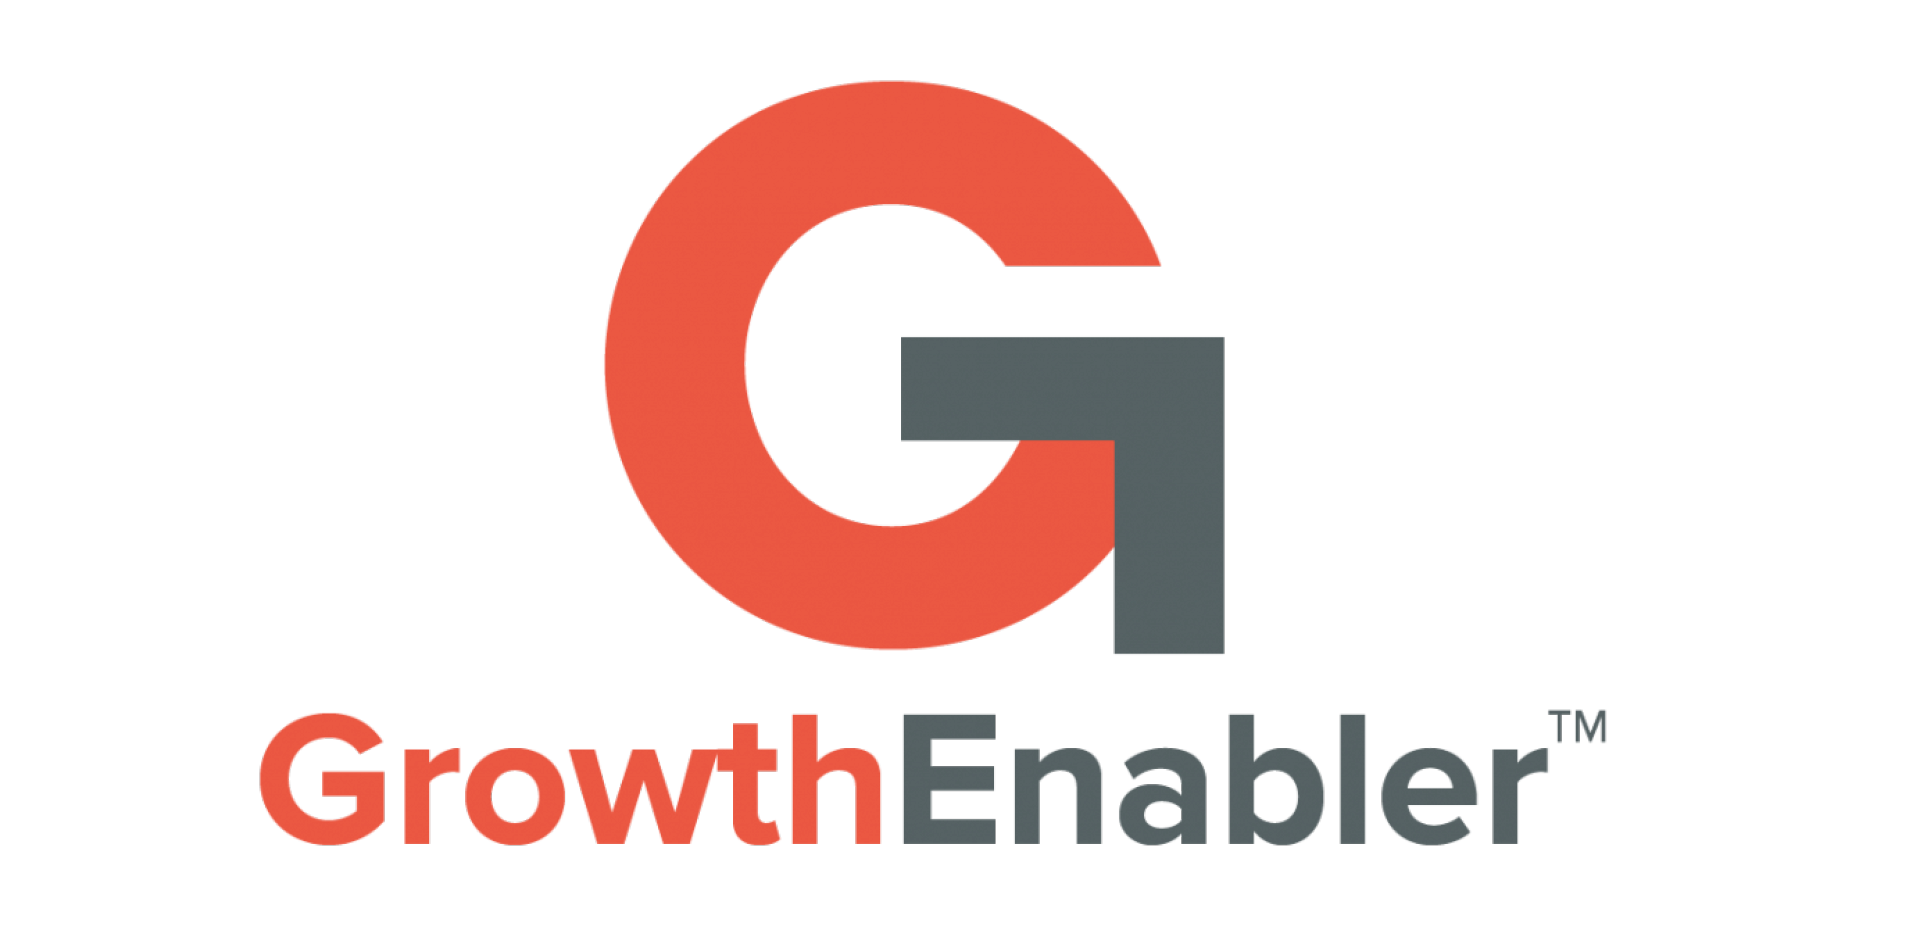 Tech company GrowthEnabler launches partnership with everywoman Self-Made